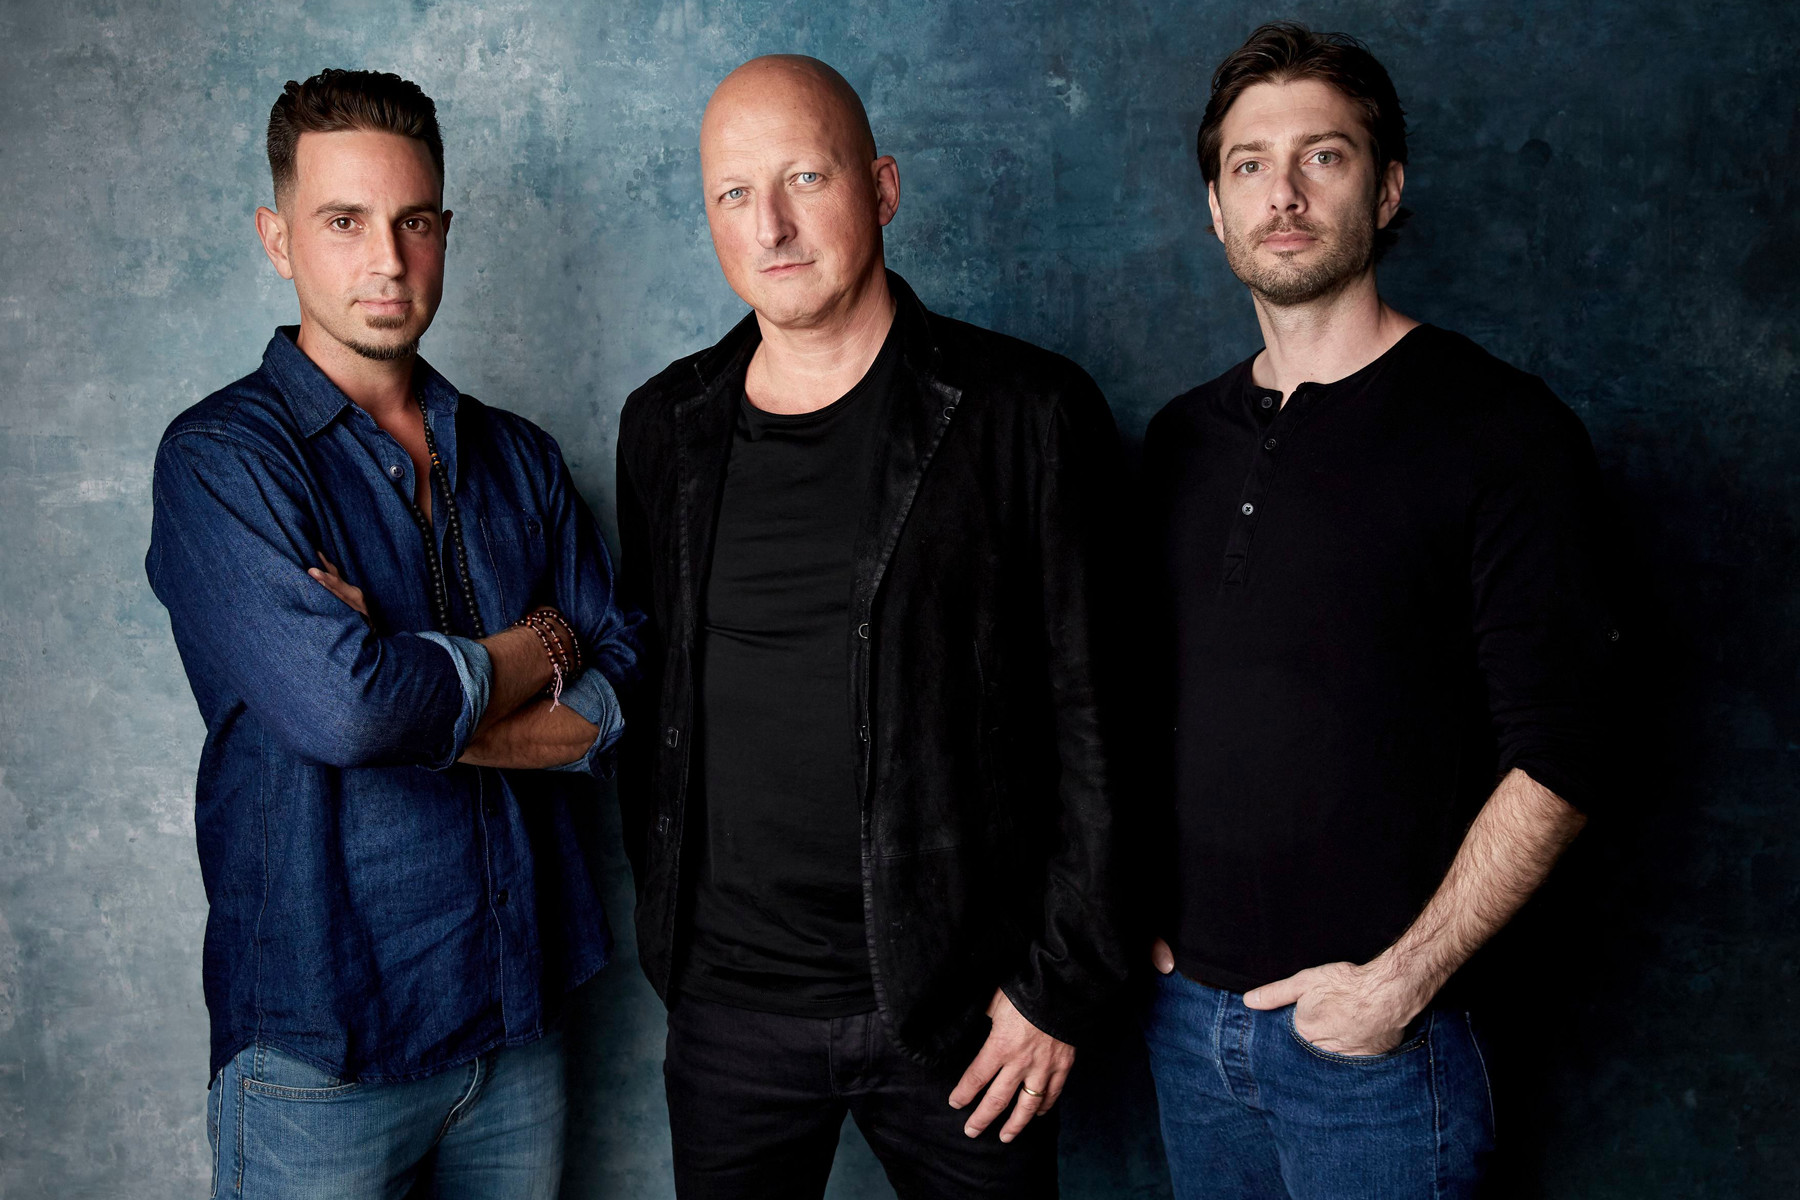 Dan Reed, Wade Robson, and Jimmy Safechuck in Leaving Neverland: The Aftermath (2019)